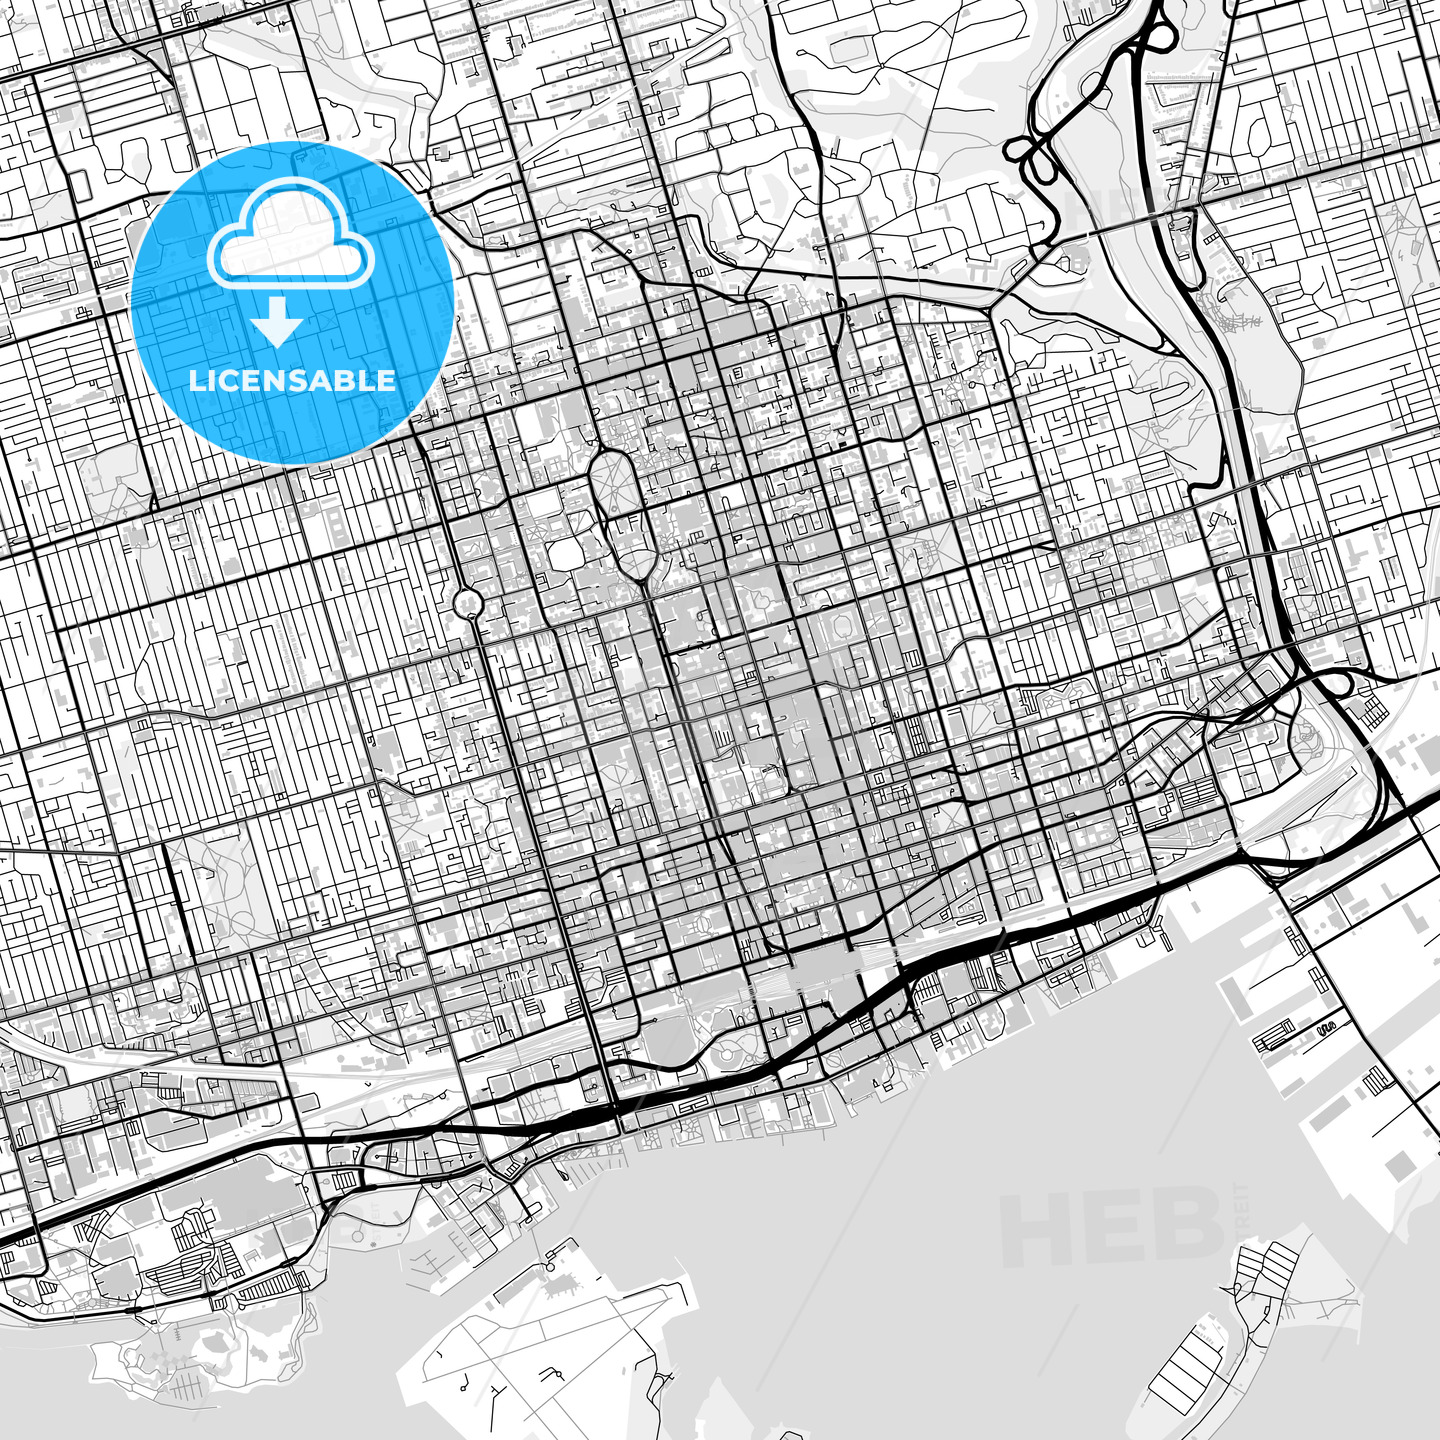 Downtown map of Toronto, Canada on weather toronto canada, map of ohio, provinces of canada, map of japan, map of california, map of new york, map of philadelphia, map of las vegas, wonder mountain toronto canada, map of hong kong, map of istanbul turkey, map of usa, landmarks toronto canada, hotels in toronto canada, house toronto canada, tourism toronto canada, shopping toronto canada, ontario canada, road map toronto canada, cn tower toronto canada,